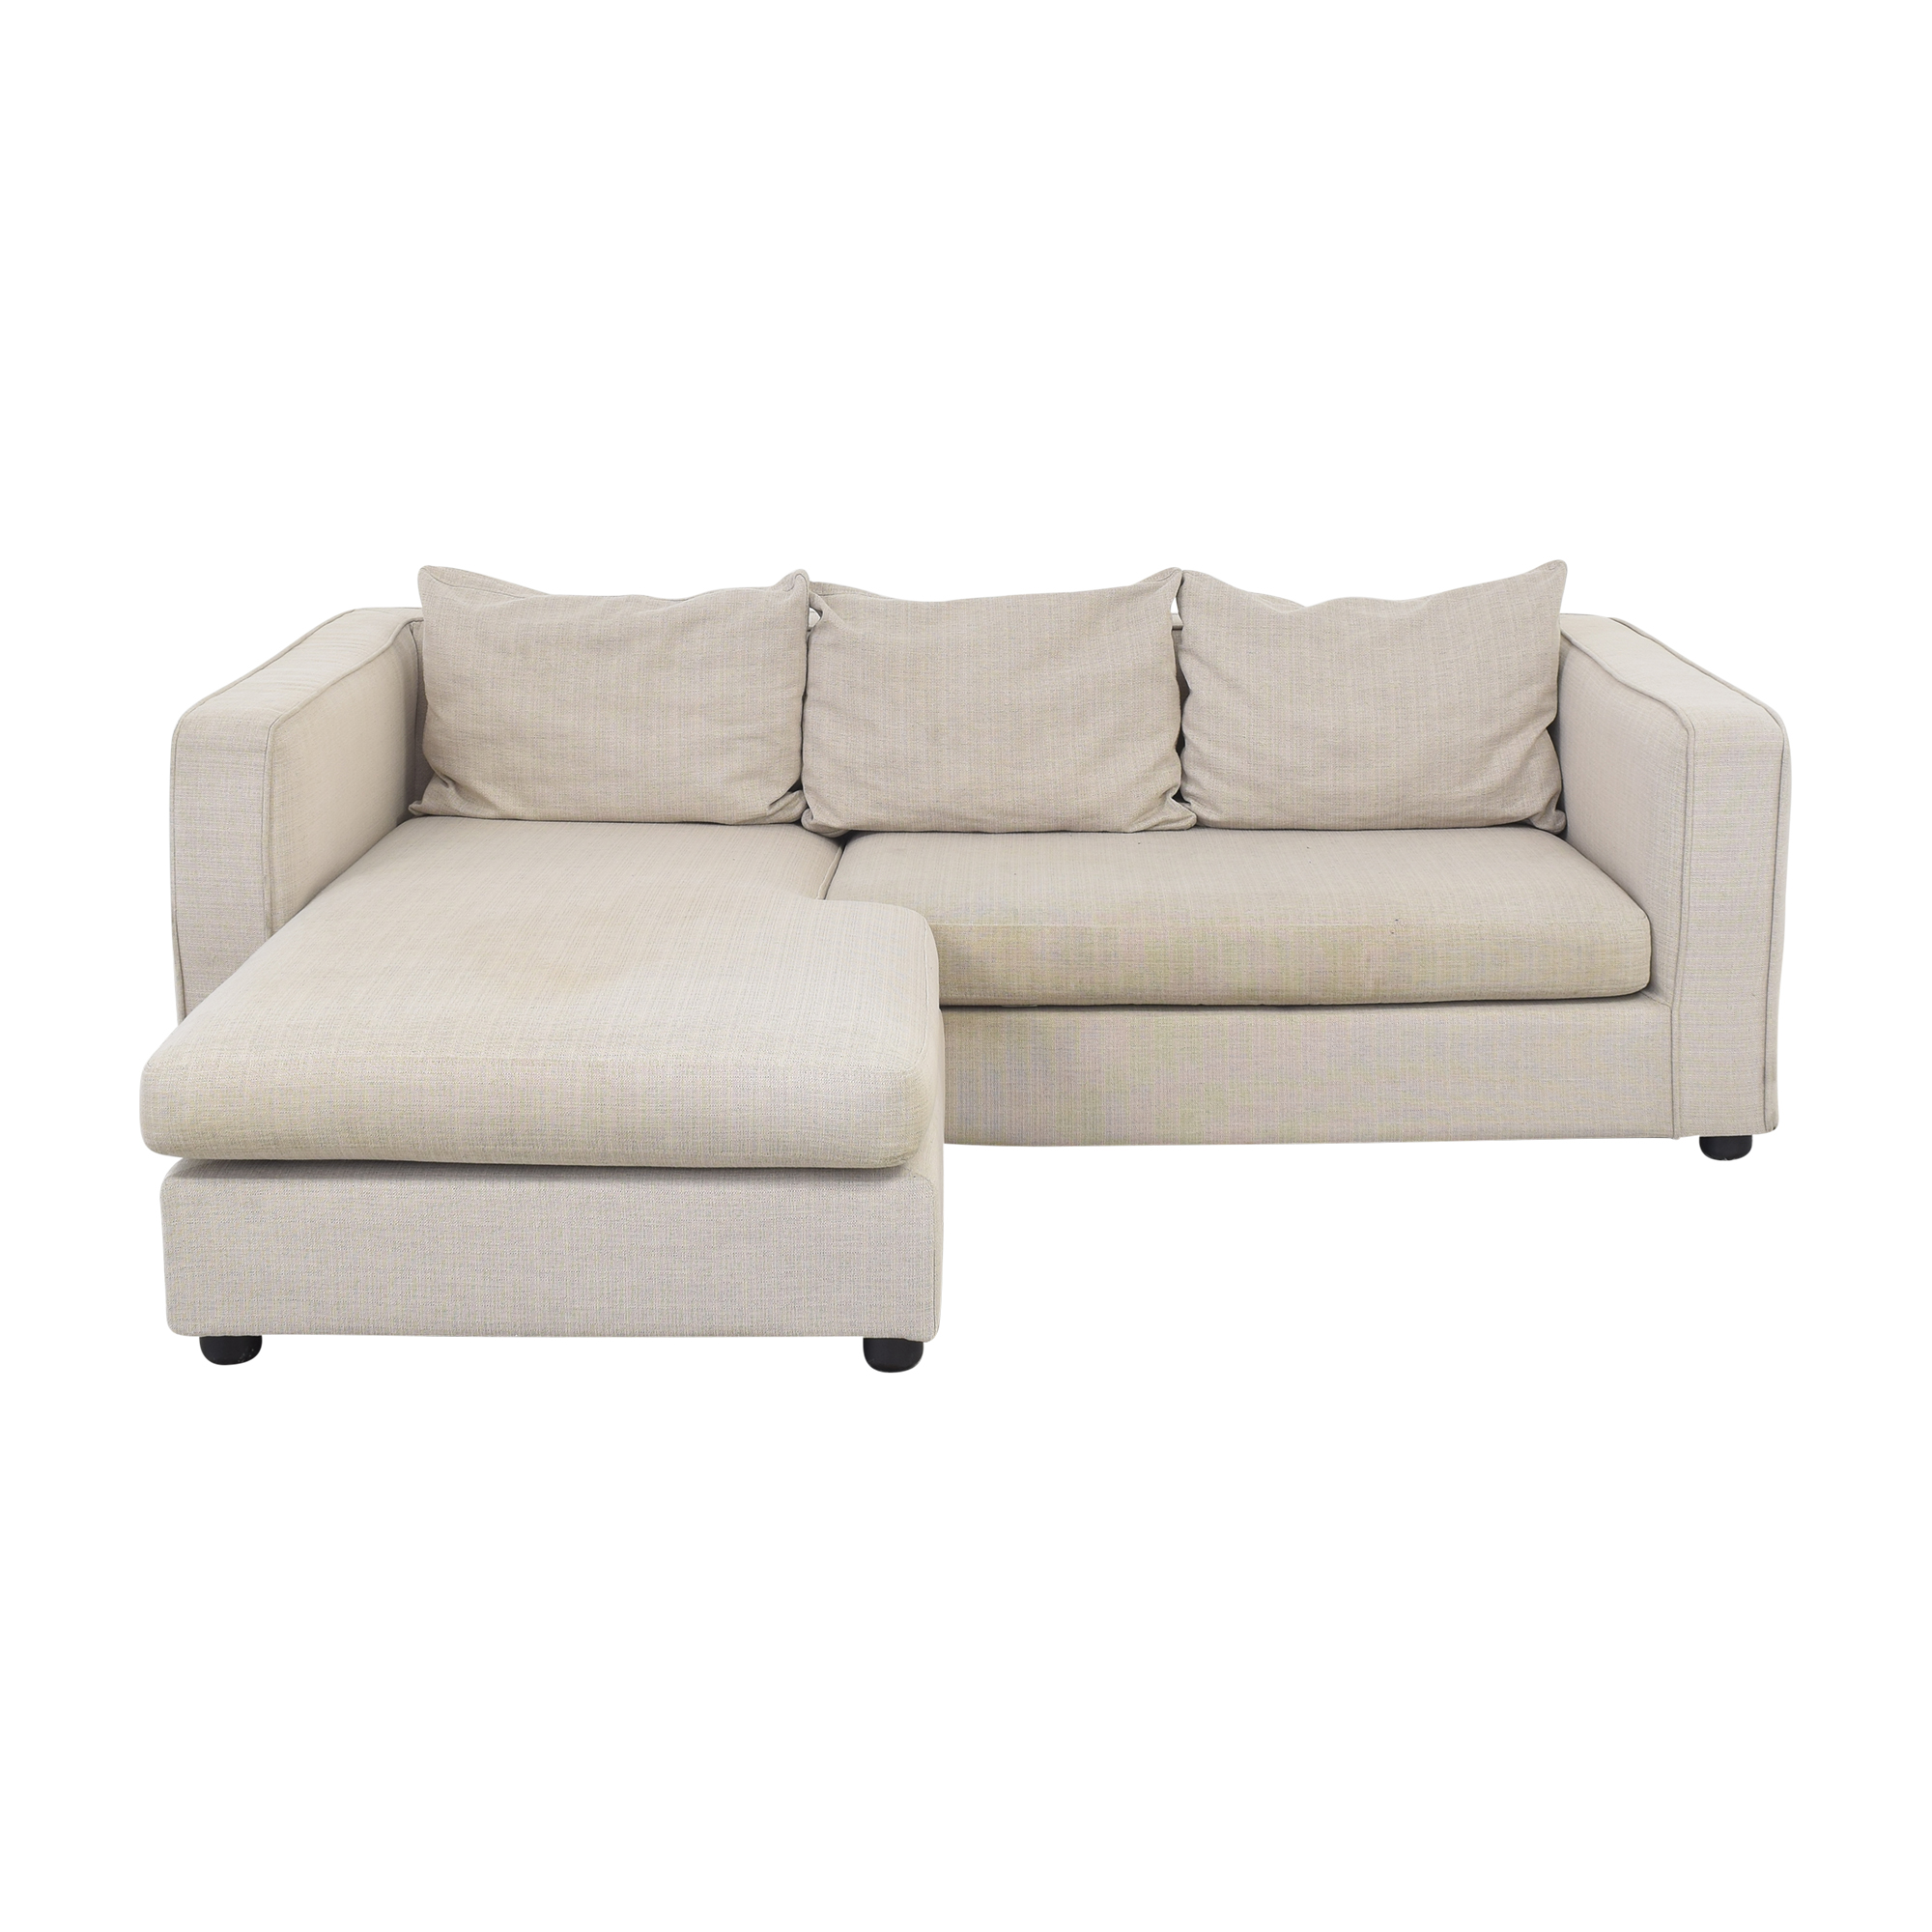 Mobital Mobital Chaise Sectional Sofa pa